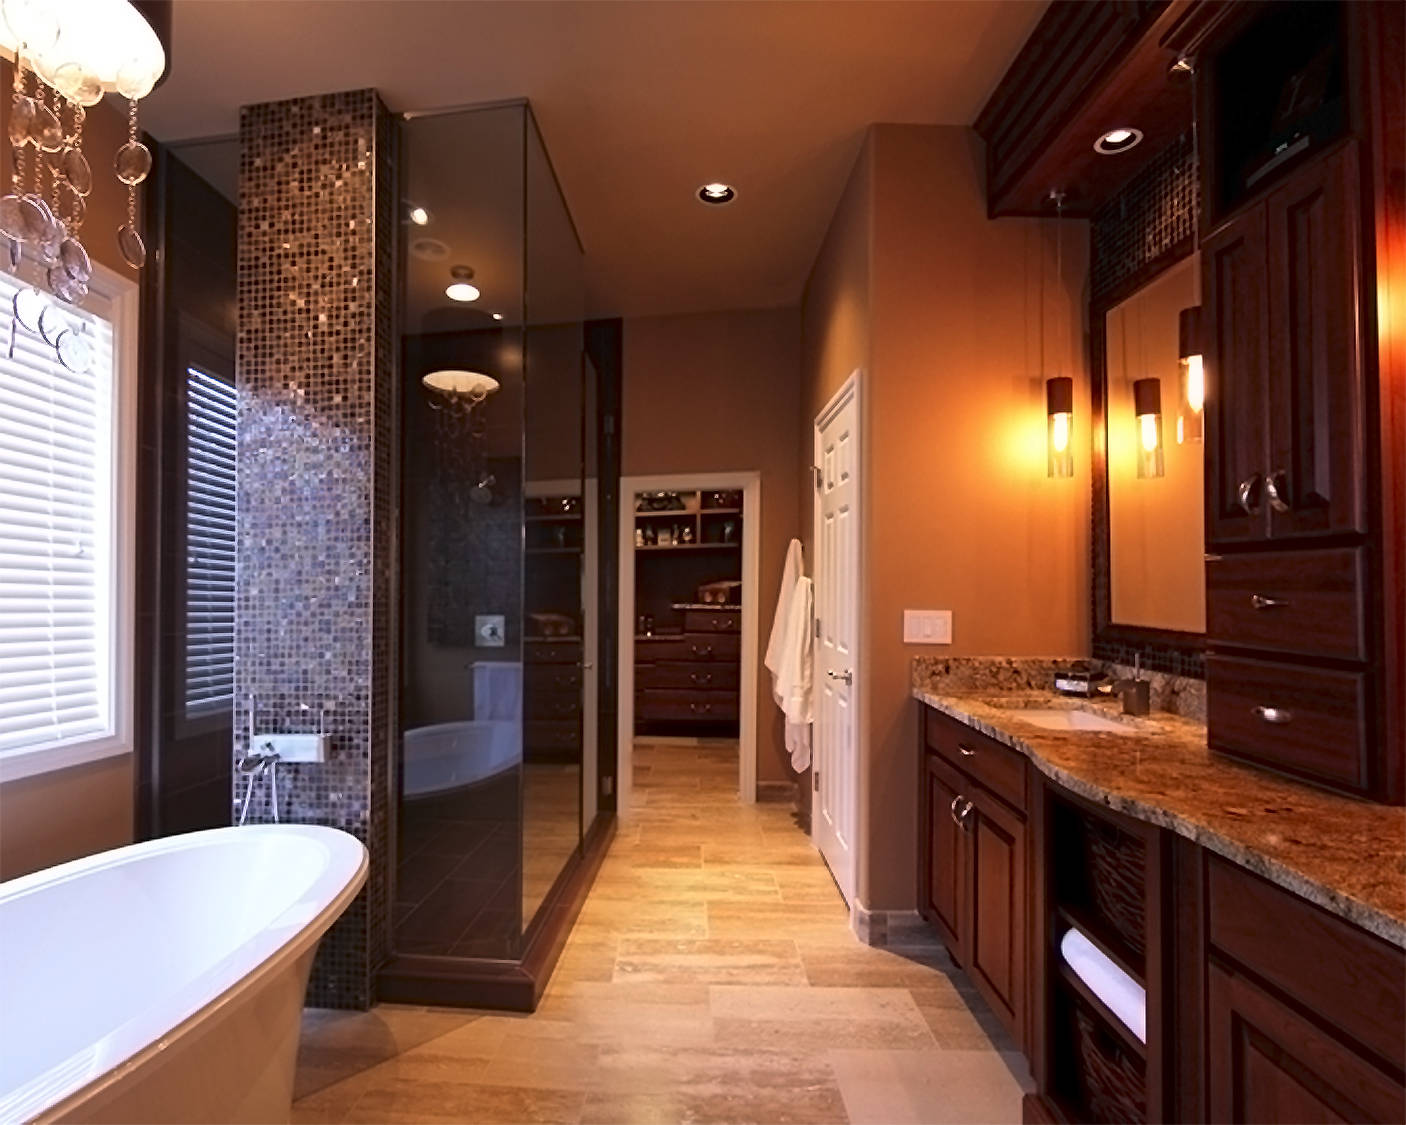 Selin construction bathroom remodel for Bathroom remodeling pictures and ideas